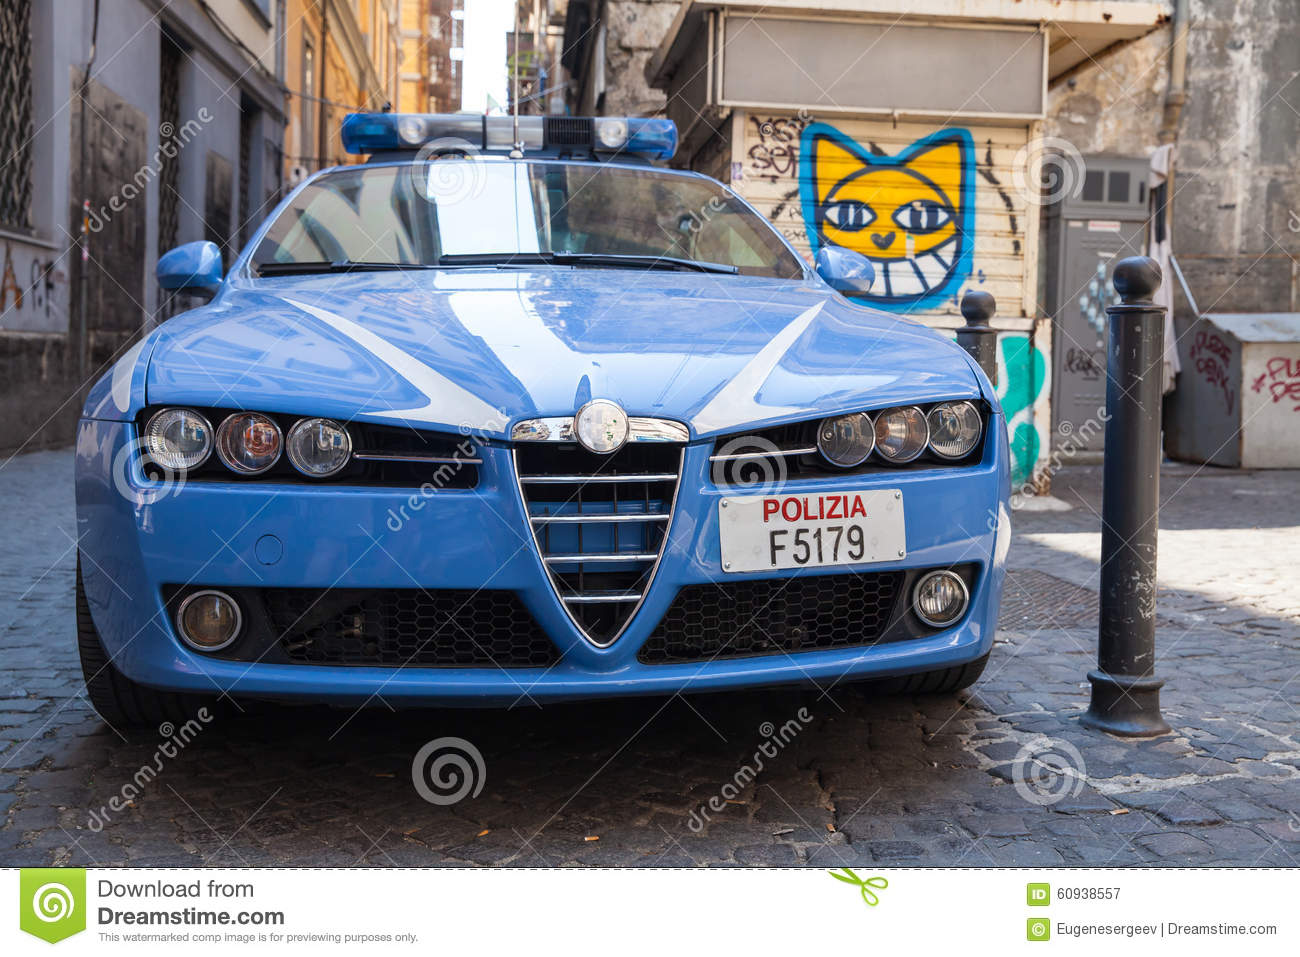 Alfa Romeo 159 Editorial Photography  Image 60938557. Payday Loans Beaumont Texas Dentist Chino Ca. Nationwide Insurance Columbus. Online Bachelors Degree North Carolina. Pensacola School Of Massage Therapy. Career Training Institute Phd Online Theology. Choreoathetotic Cerebral Palsy. Microsoft Online Backup Women Hair Falling Out. Advertise Your Business Online